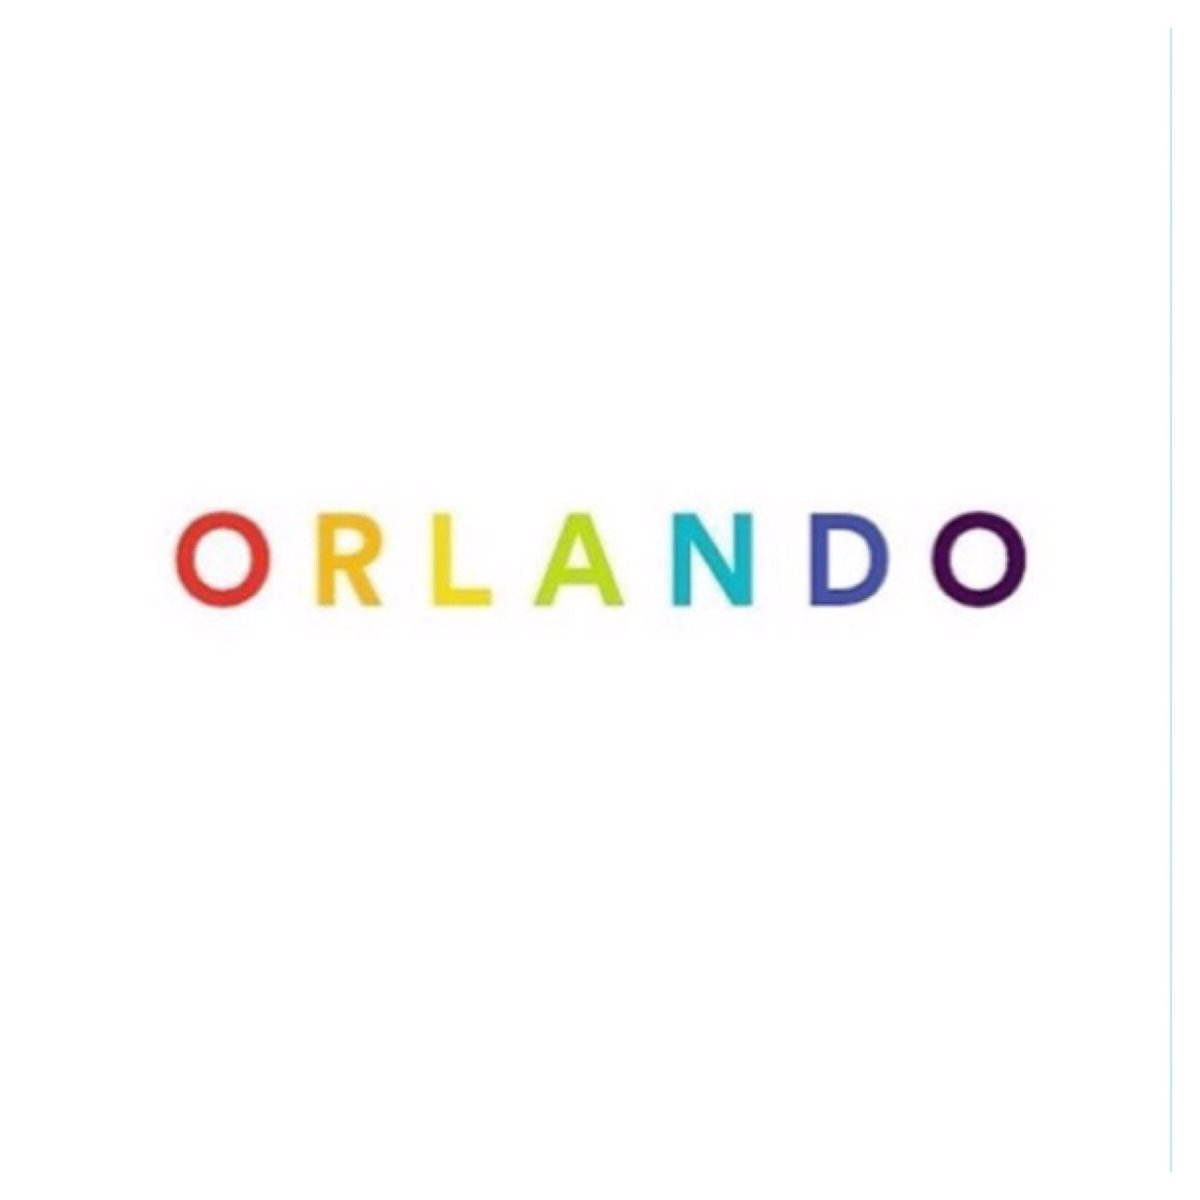 Pray for #Orlando https://t.co/Inm2yzQ98r